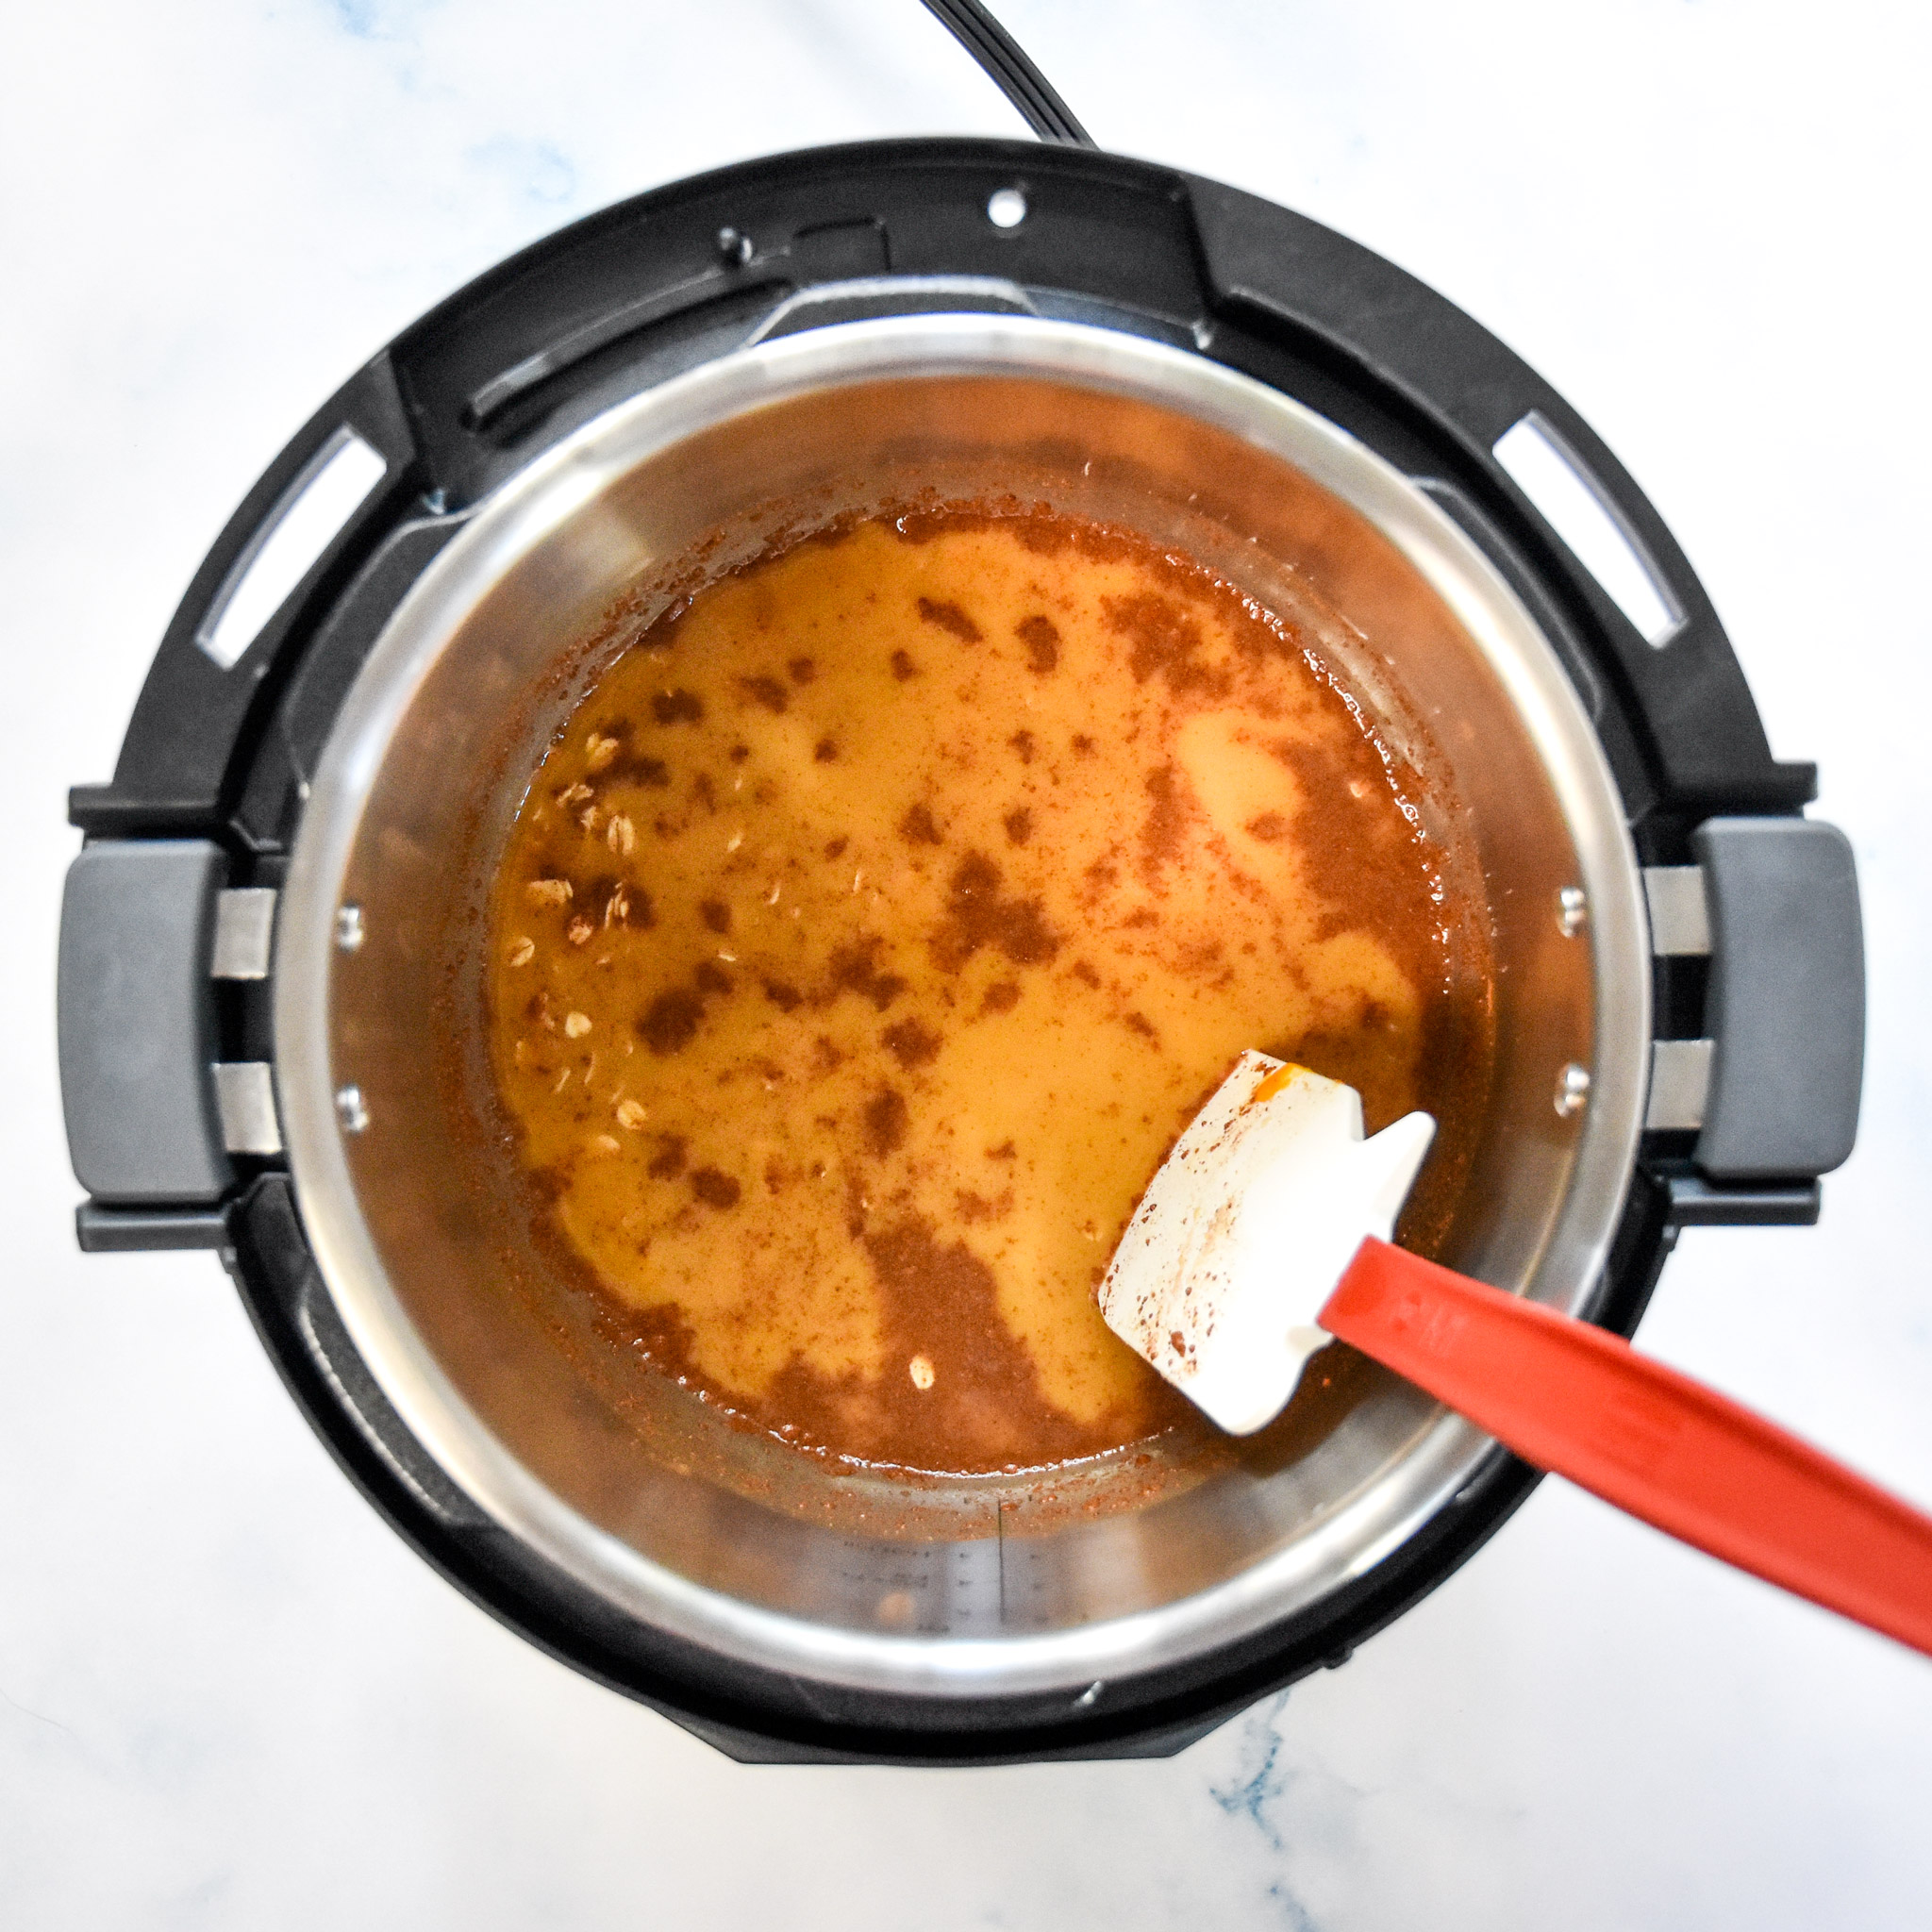 ingredients in the instant pot stirred up.